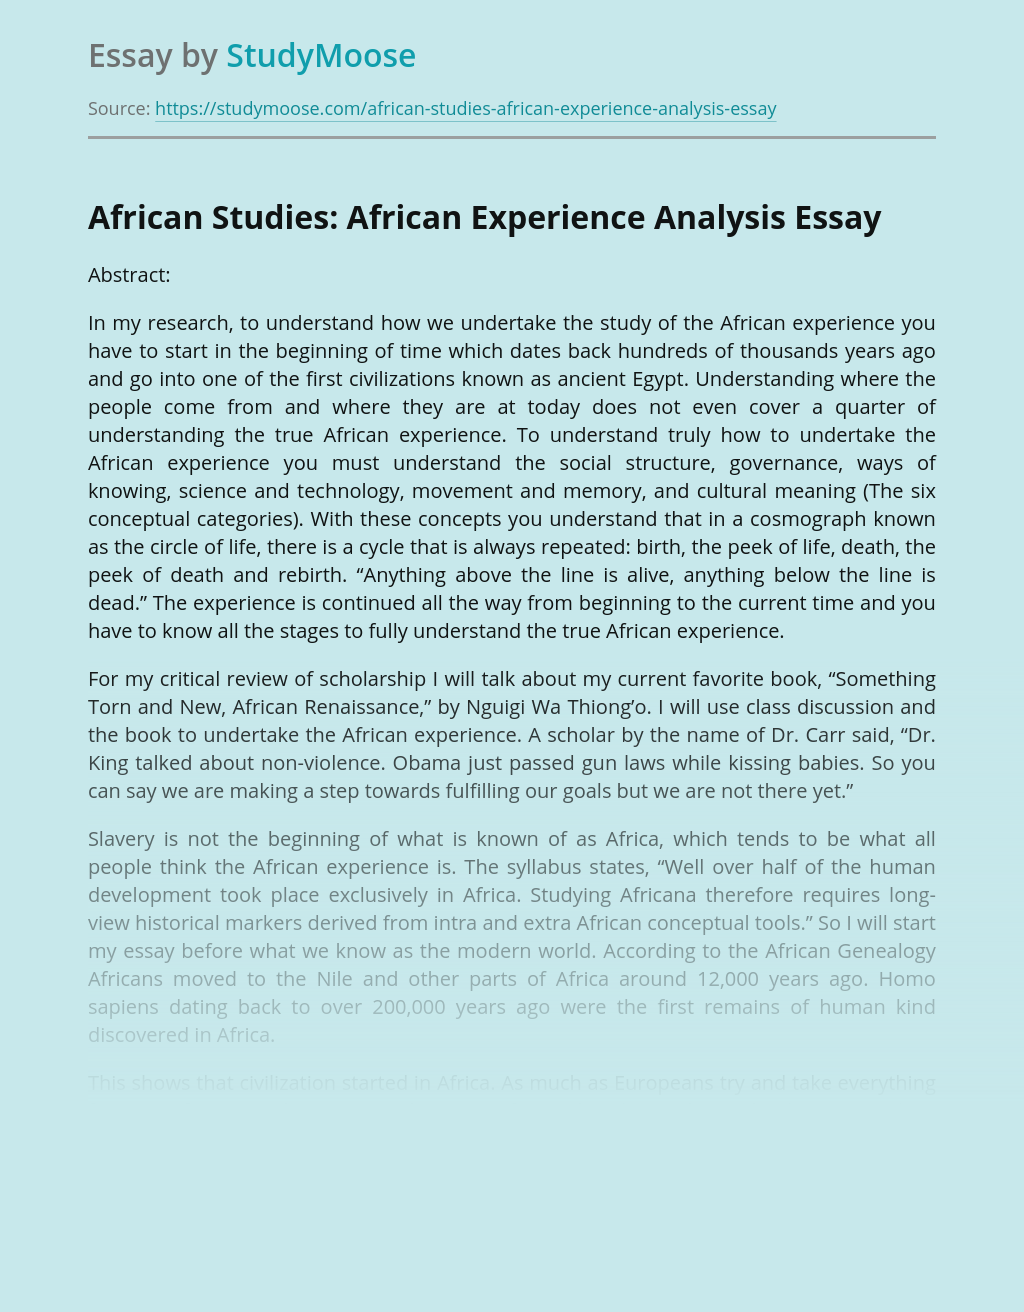 African Studies: African Experience Analysis